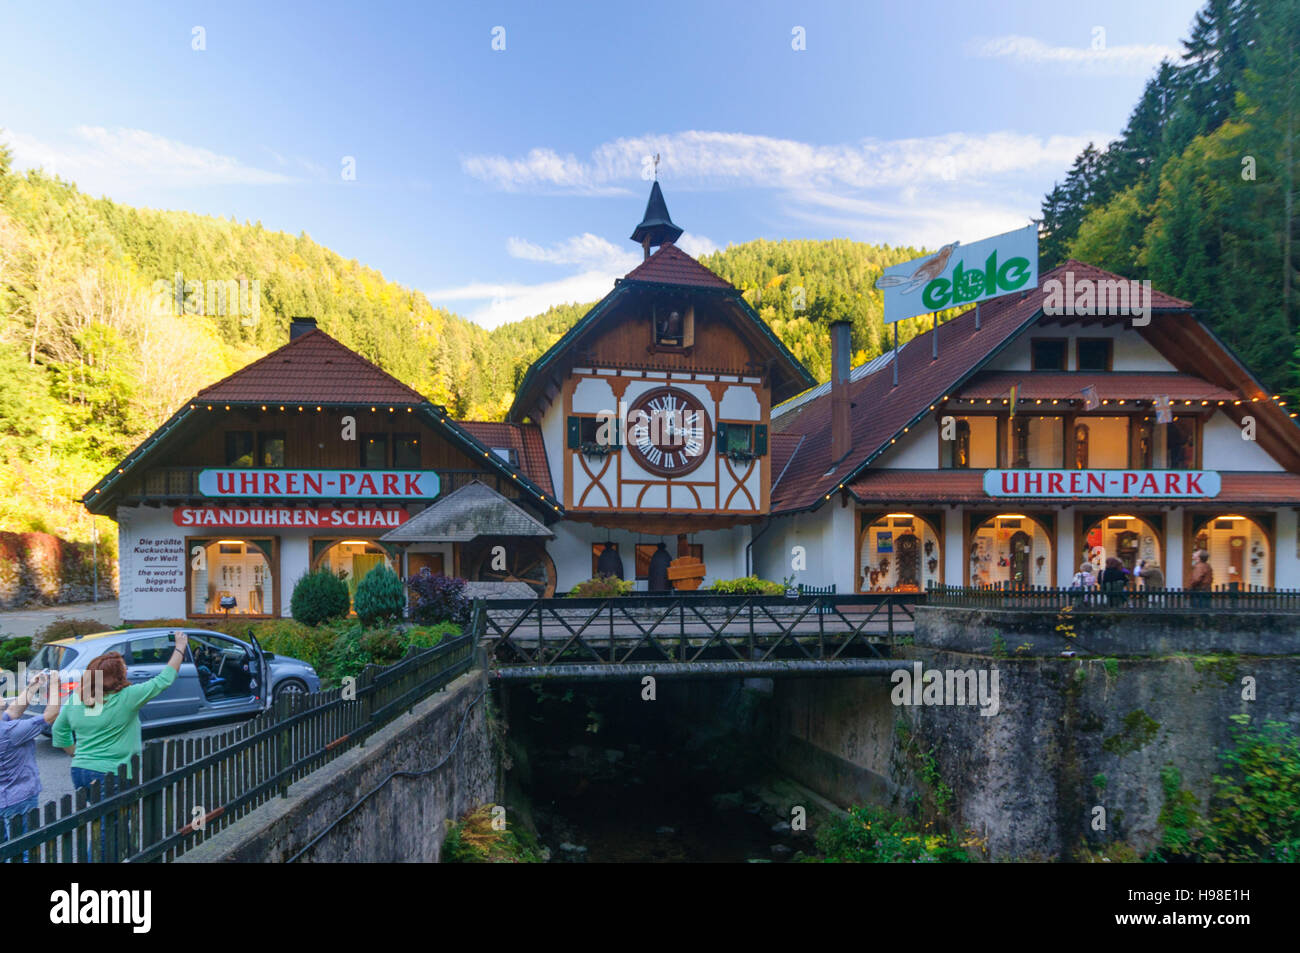 cuckoo clock instructions with Stock Photo Triberg Im Schwarzwald Watch Shop On The Main Road With The Worlds 126191117 on 1526 furthermore Black White Alarm Clock likewise Stock Photo Triberg Im Schwarzwald Watch Shop On The Main Road With The Worlds 126191117 furthermore Cuckoo Clock 8 Day Movement Chalet Style 34cm By Cuckoo Palace  1033 further Cuckoo Clock Quartz Movement Chalet Style 24cm By Trenkle Uhren  896.